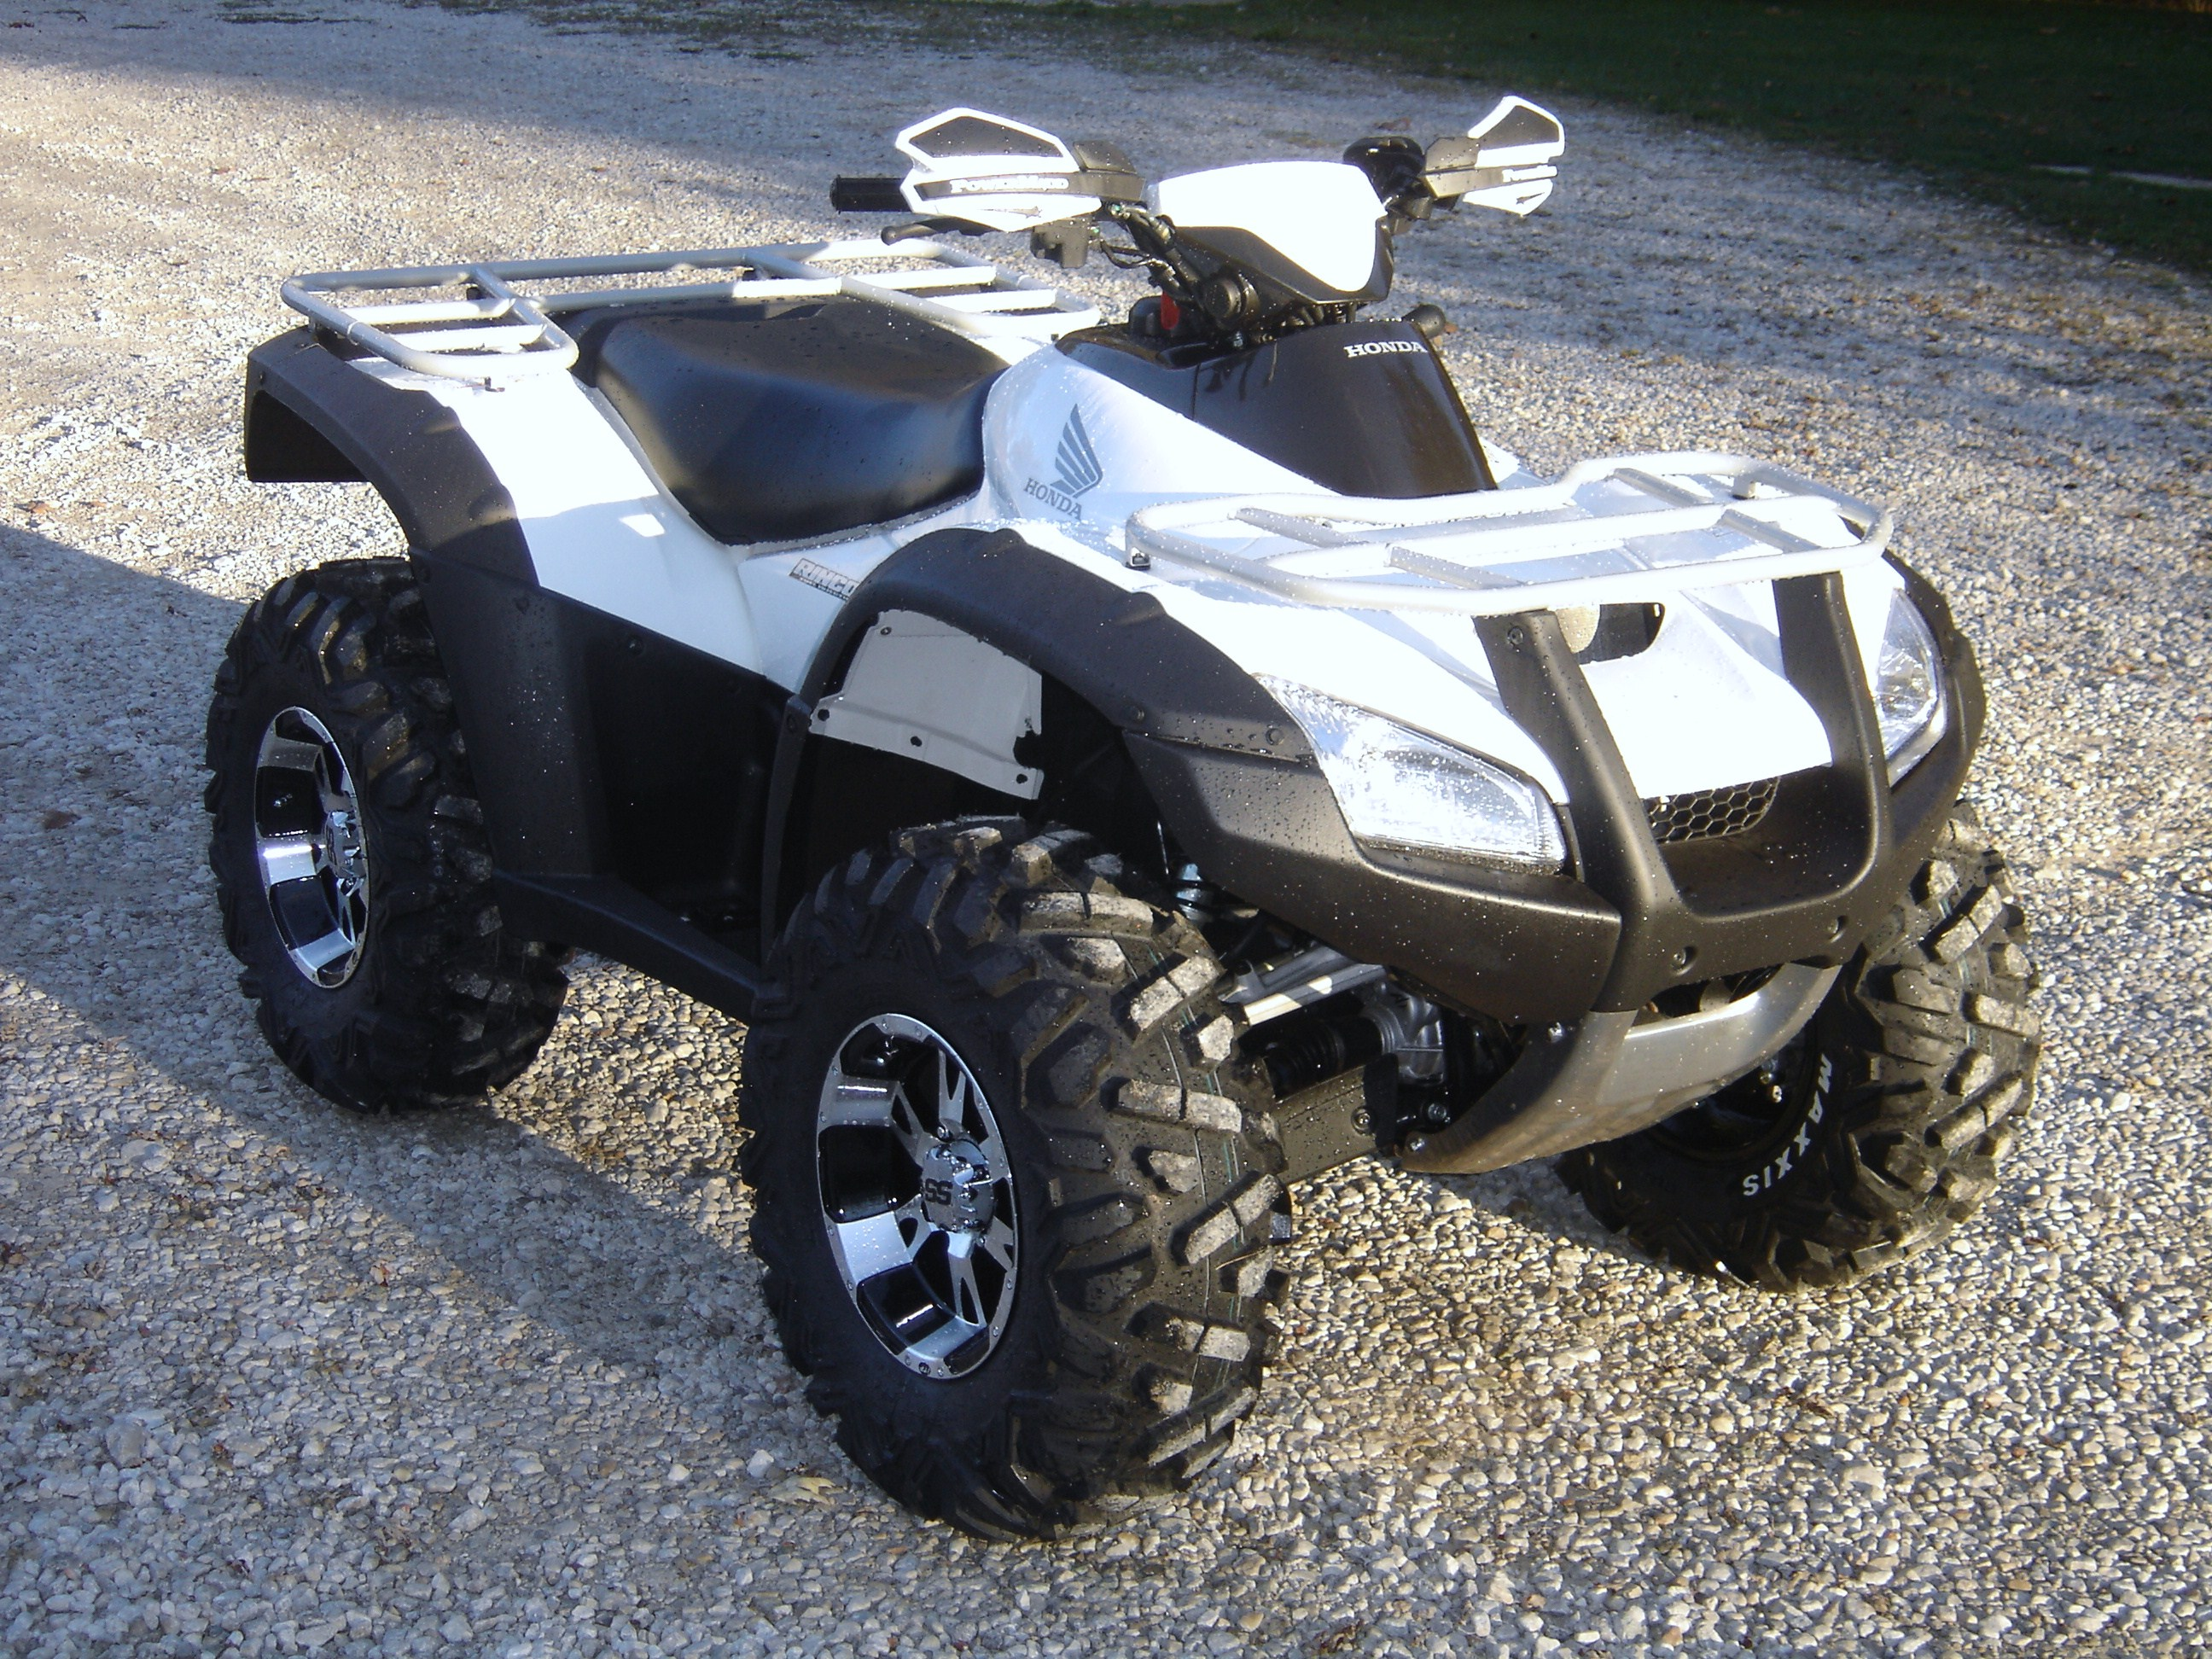 road farm this motorcycle quad is registered sale honda rincon for item